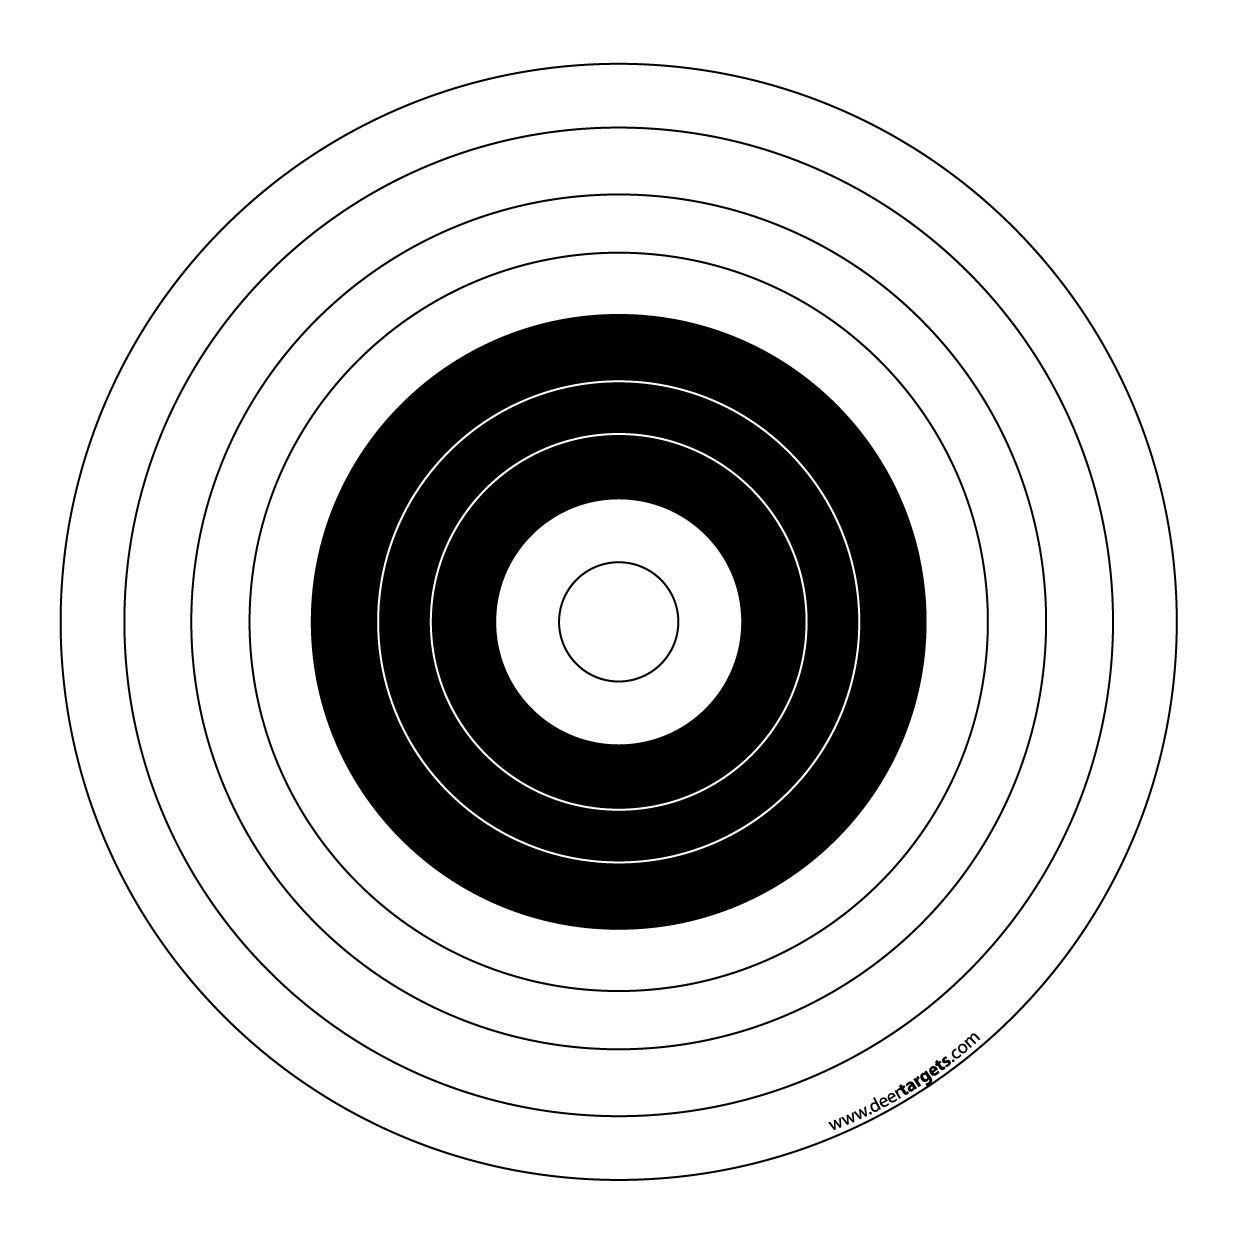 photograph about Printable Bullseye Target known as Bullseye Plans Printable - ClipArt Least difficult